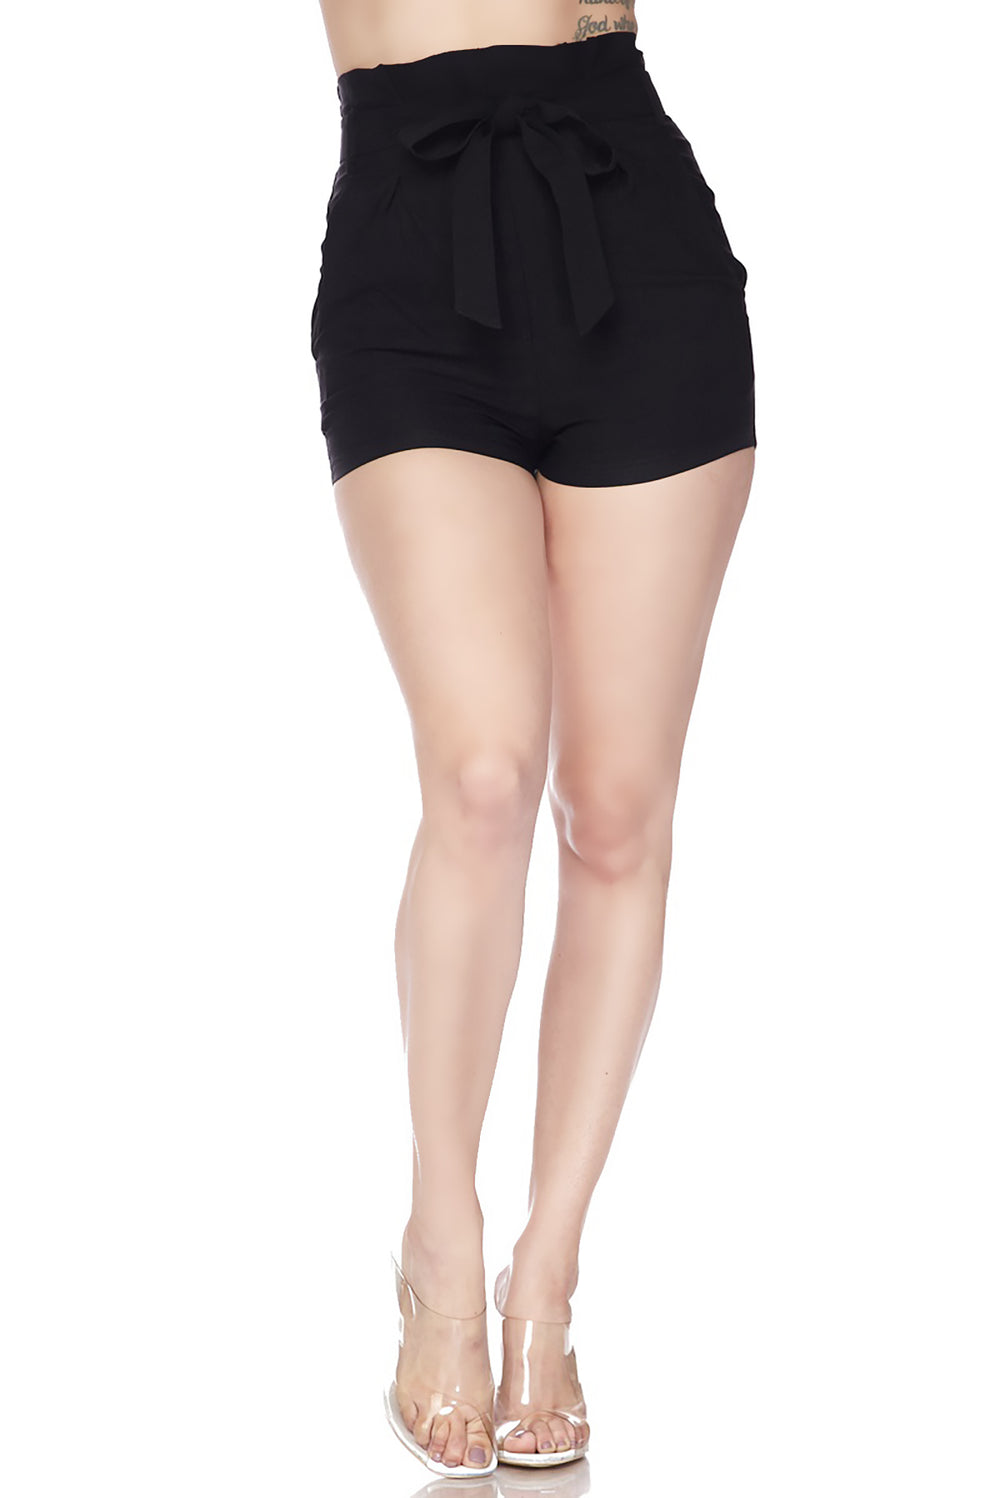 High Waist Bow Tie Front Spandex Shorts